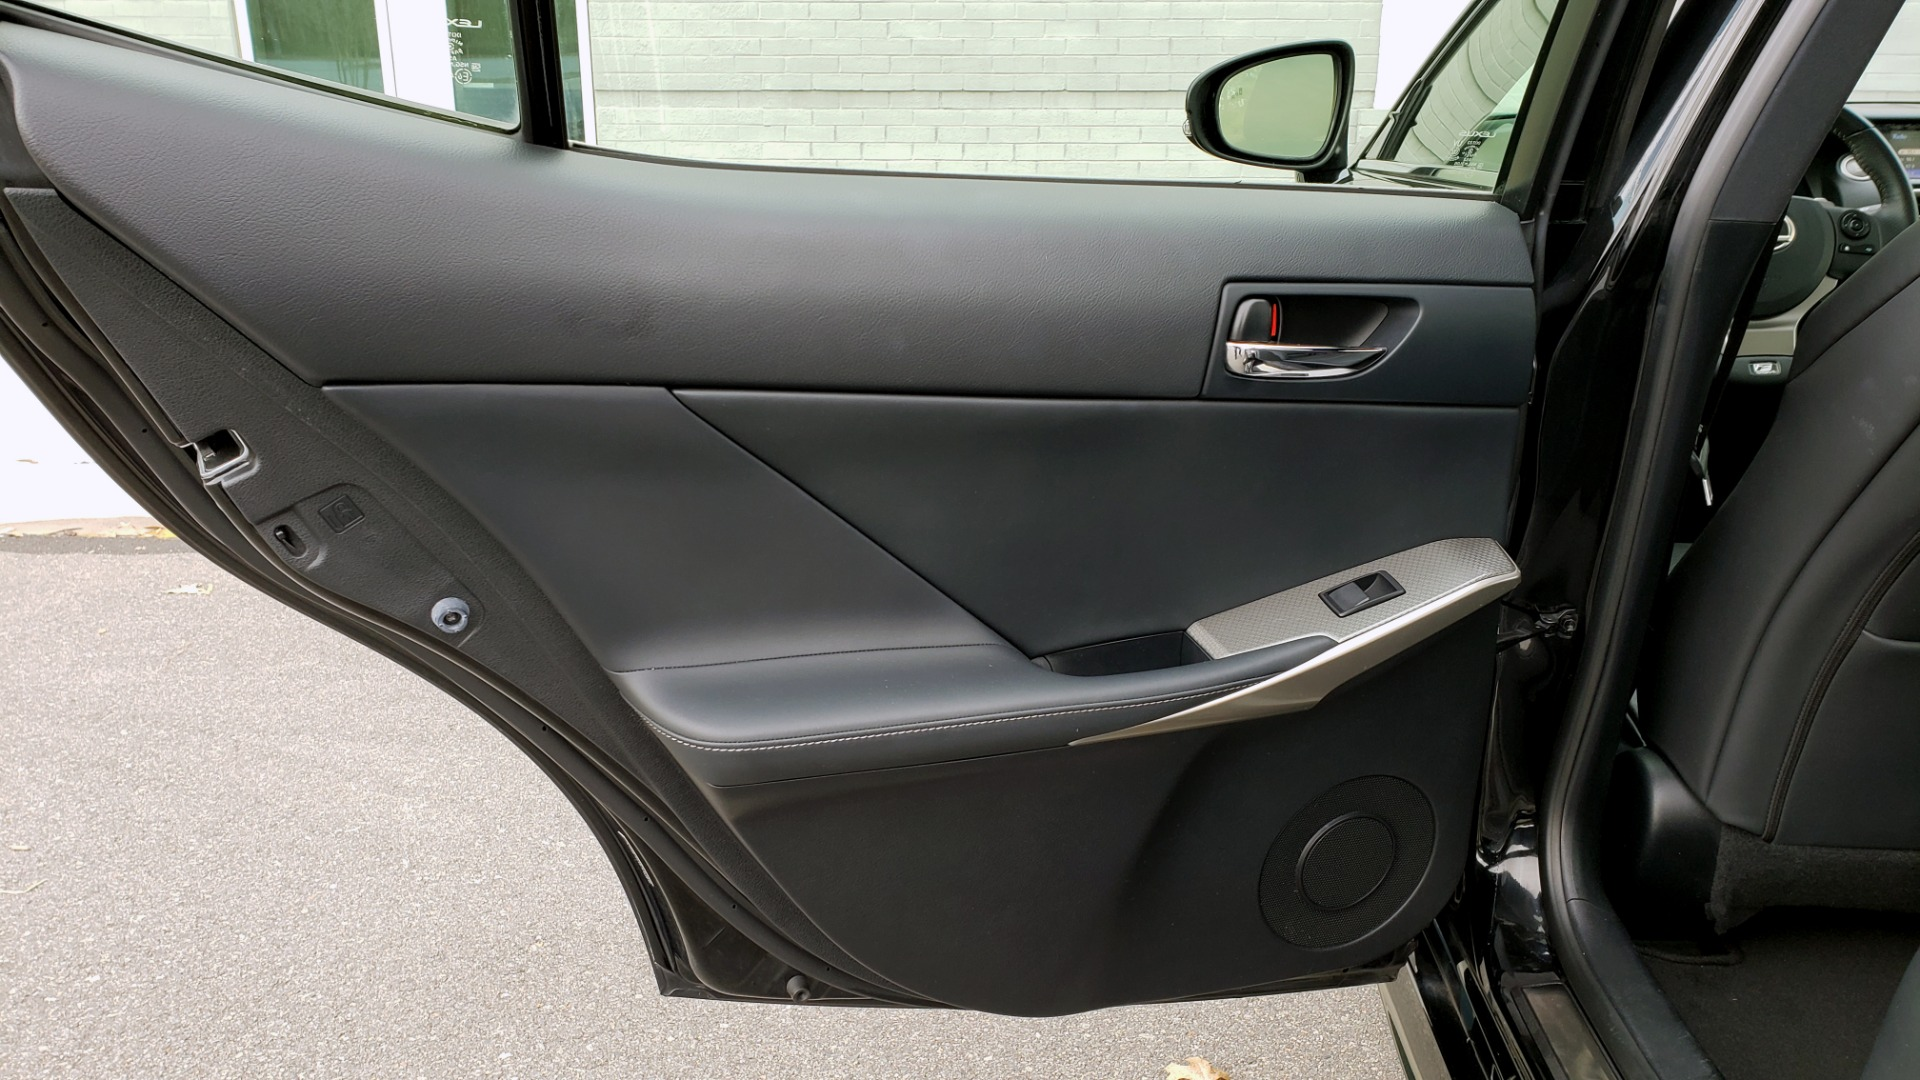 Used 2015 Lexus IS 250 F-SPORT / BLIND SPOT MON / SUNROOF / REARVIEW for sale Sold at Formula Imports in Charlotte NC 28227 58